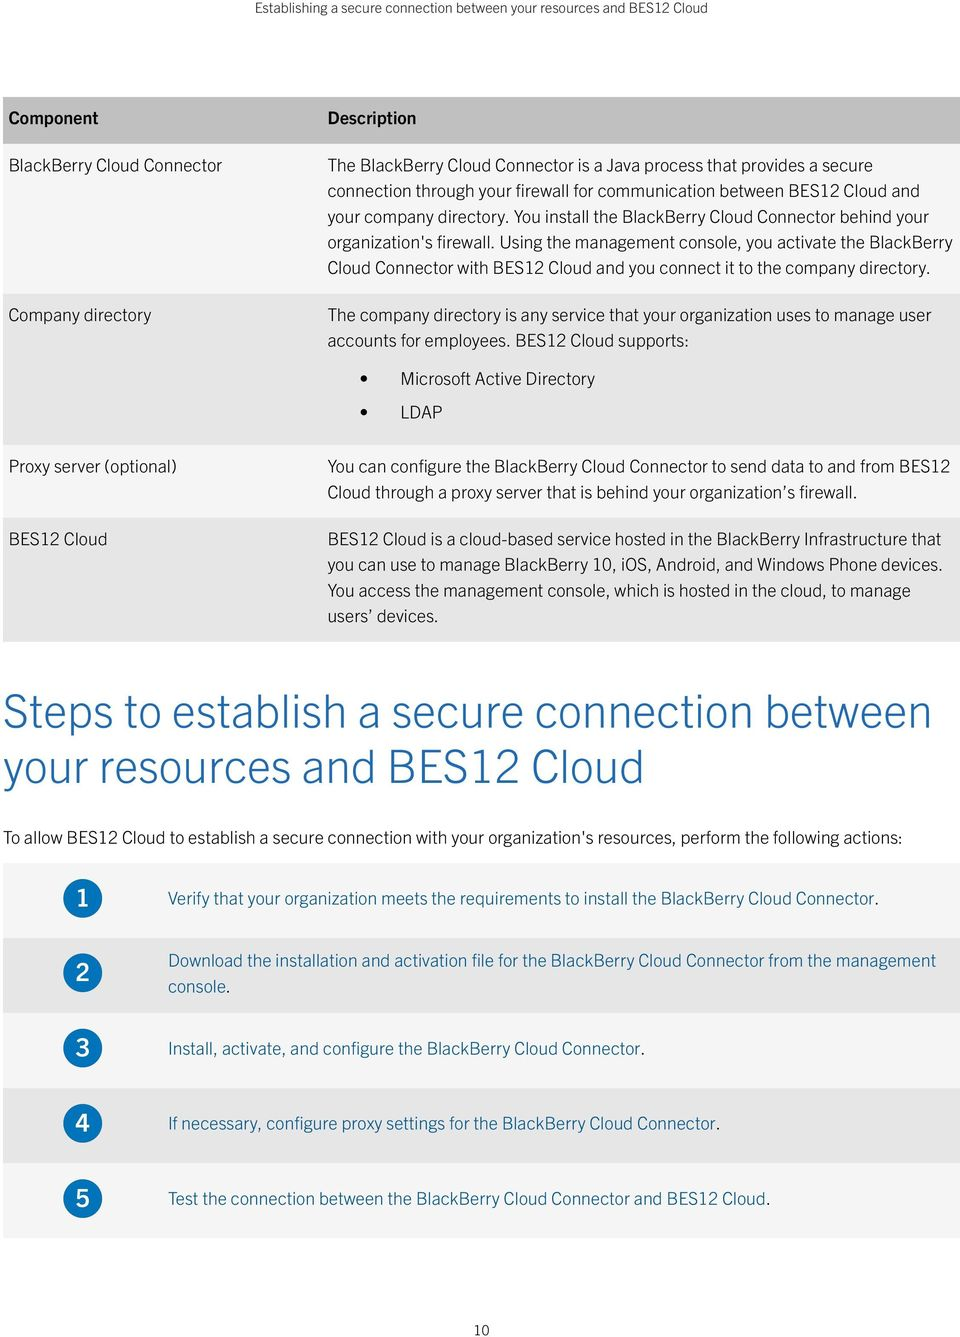 Using the management console, you activate the BlackBerry Cloud Connector with BES12 Cloud and you connect it to the company directory.